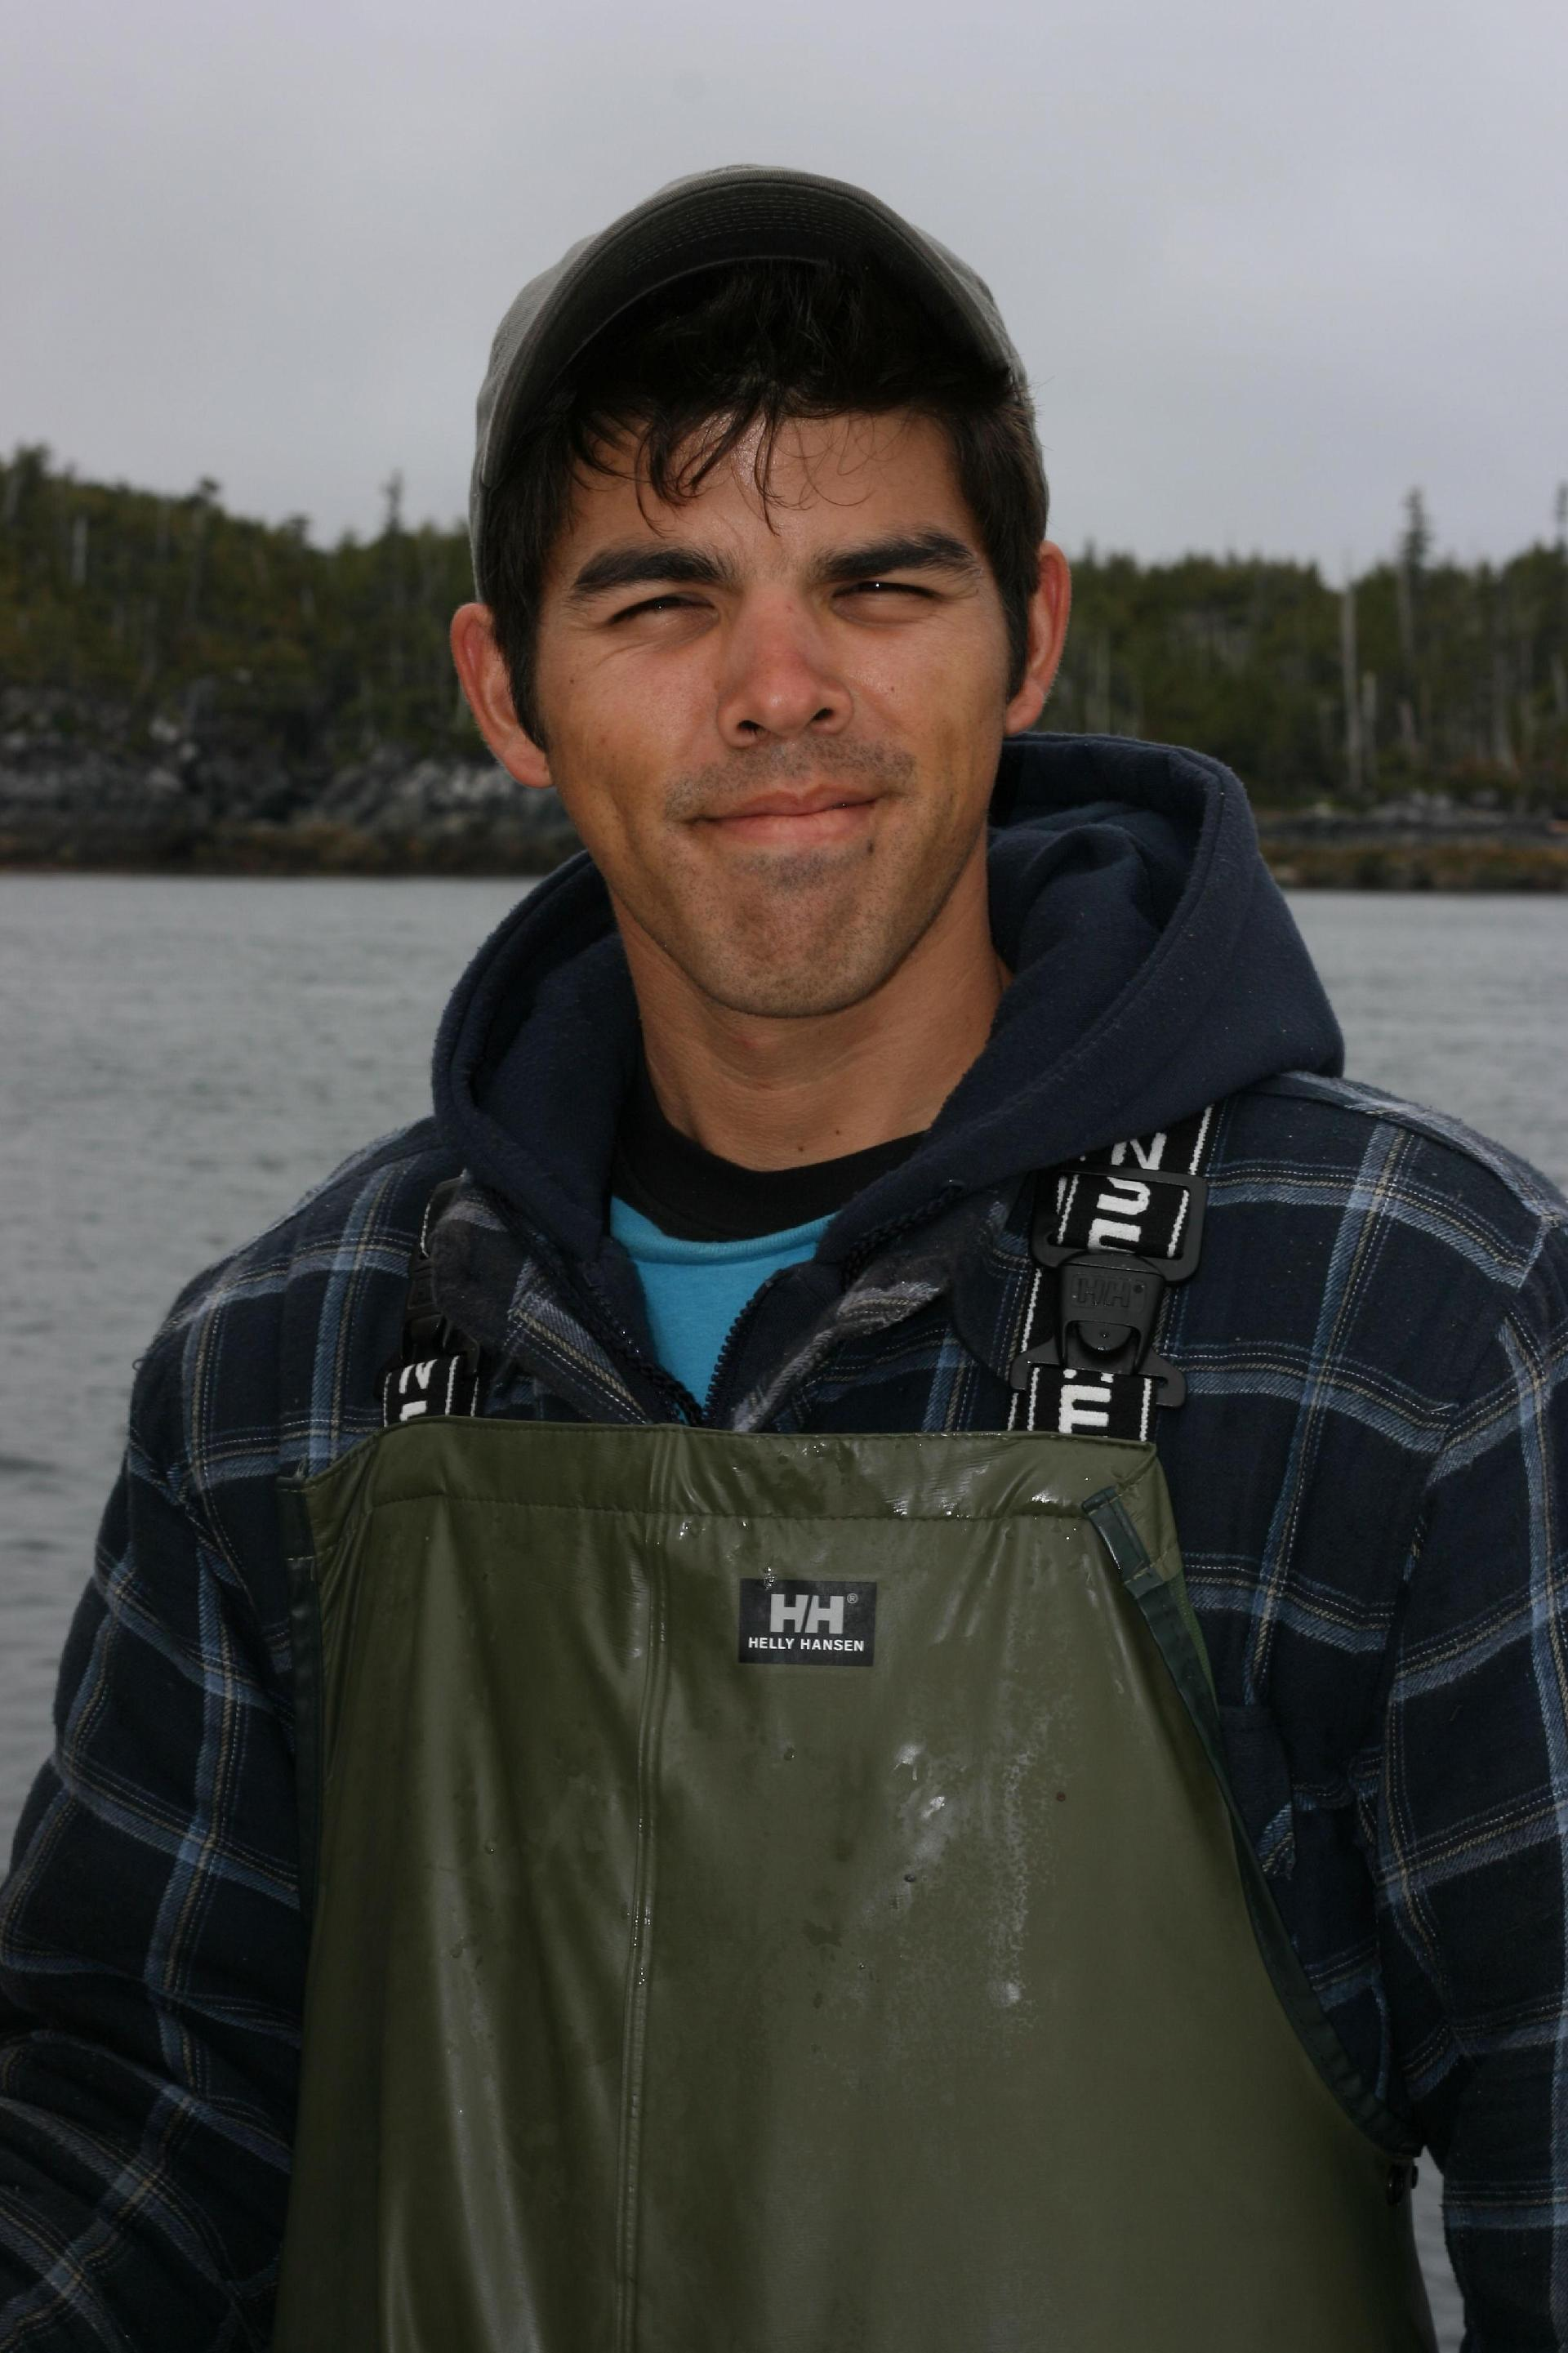 The man: Our guide, Ryan Dudoward